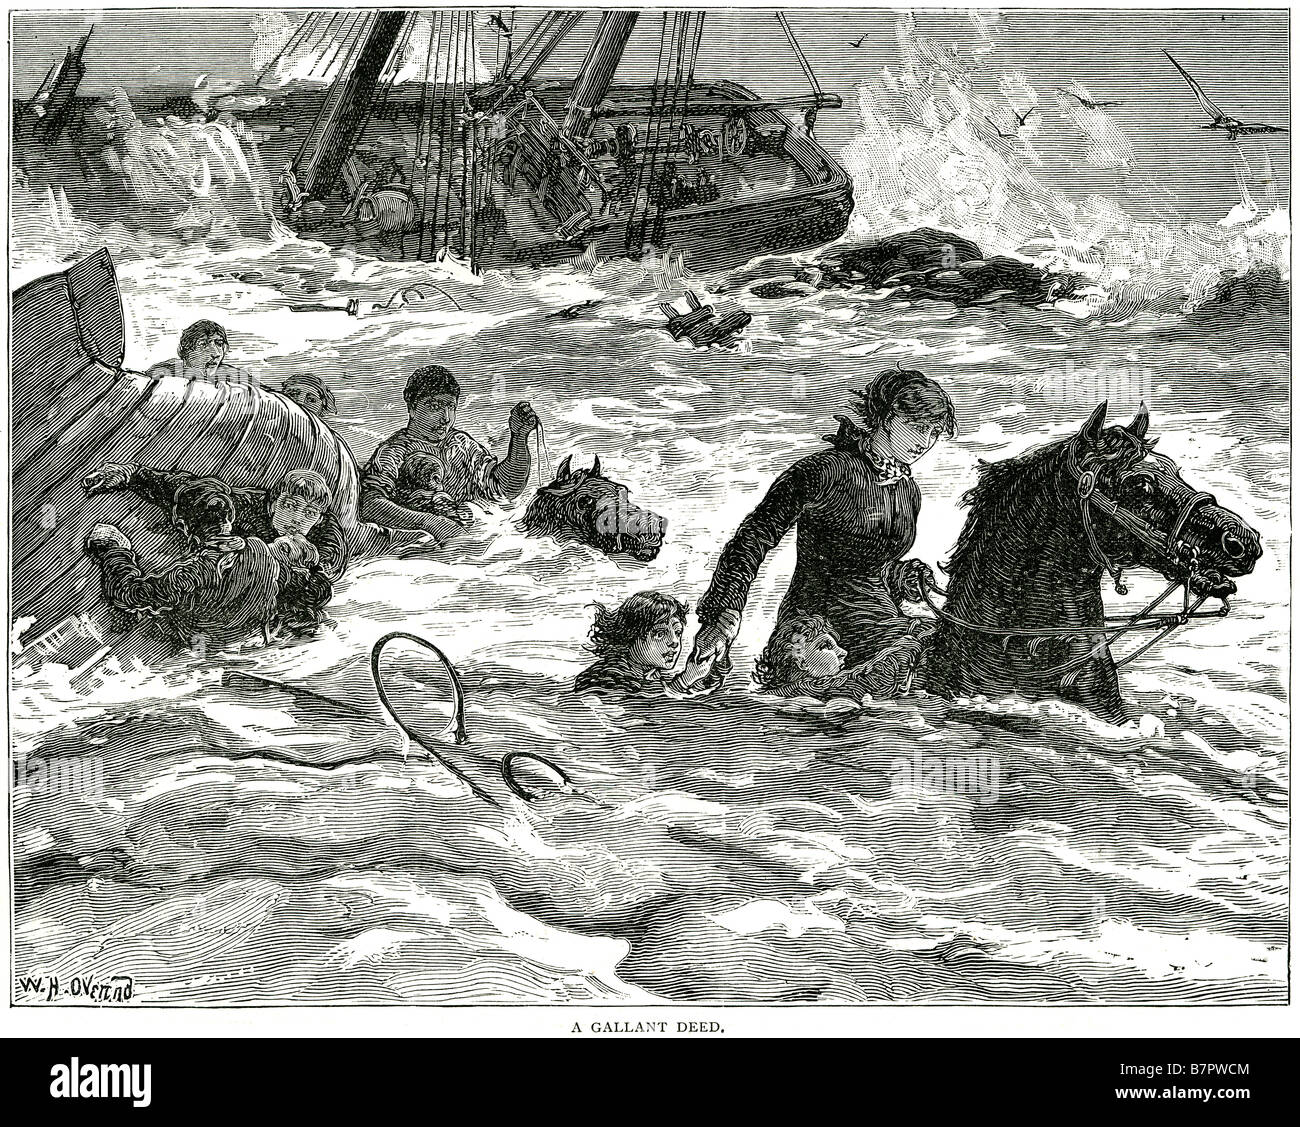 a gallant deed rescue shipwreck storm sea sailors drowning hero capsize ship sea water boat men women - Stock Image